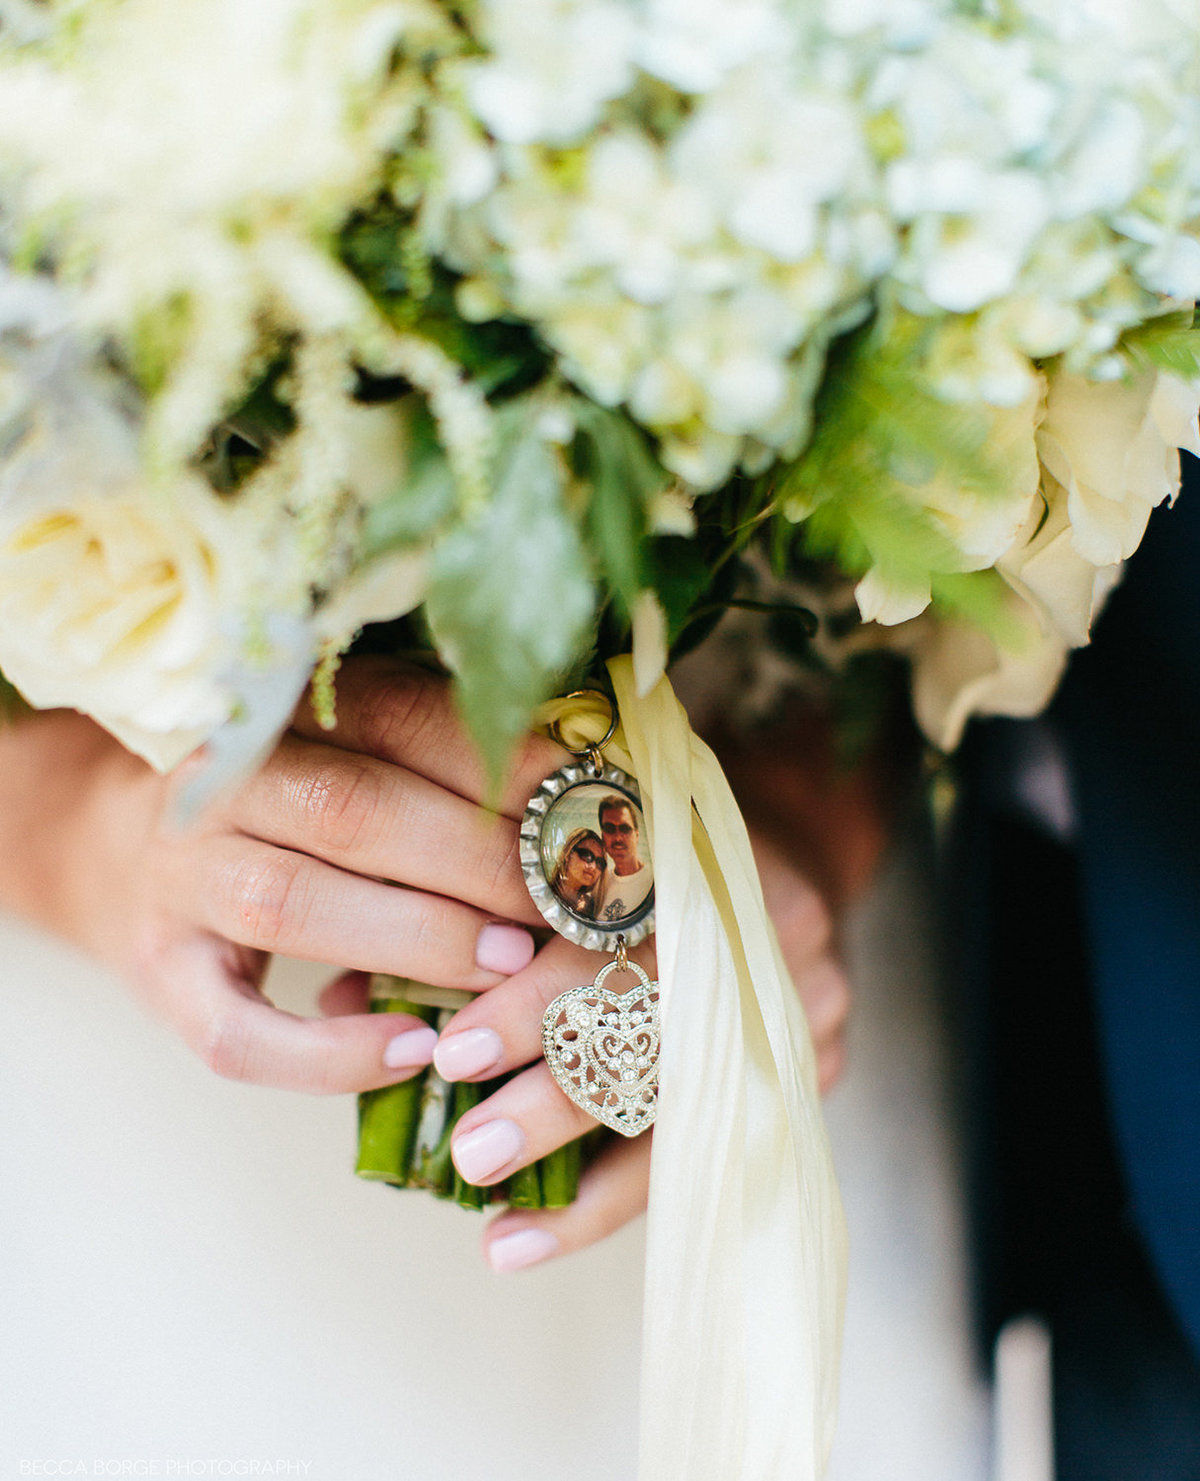 brife holding wedding boquet with a picture charm attached